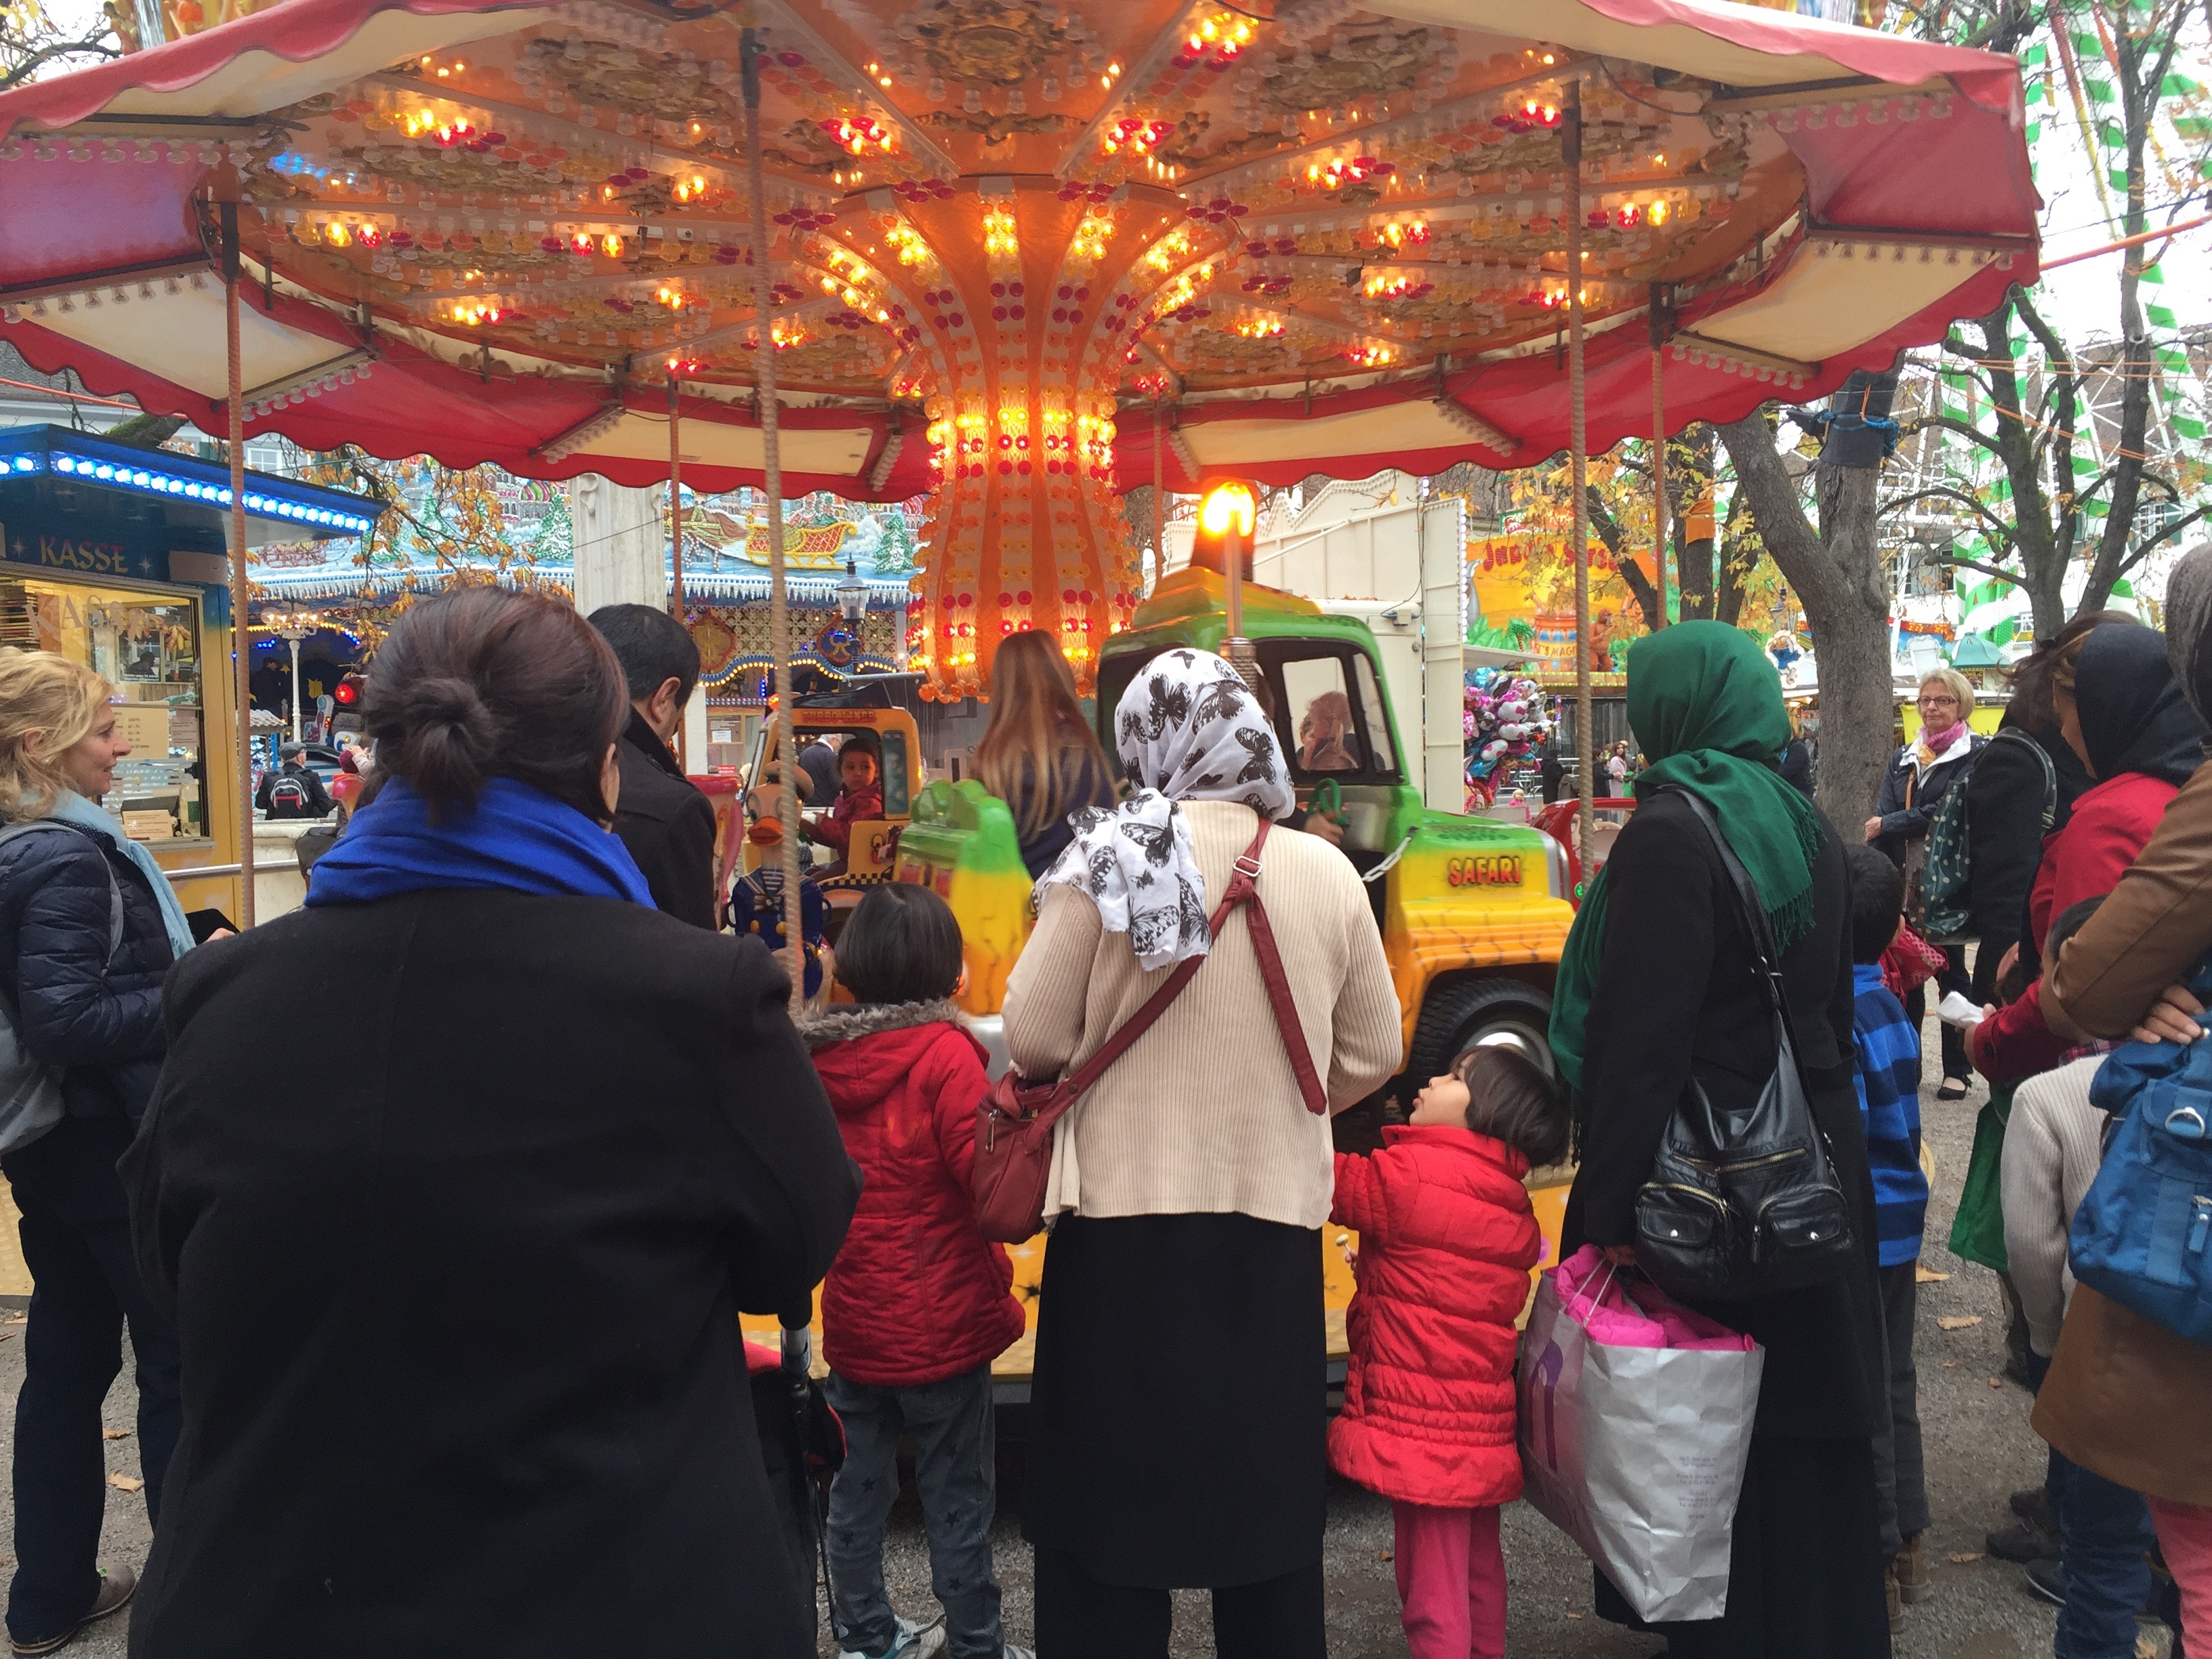 All the fun of the fair: the emotional roller coaster for one Syrian family adjusting to their new Swiss home